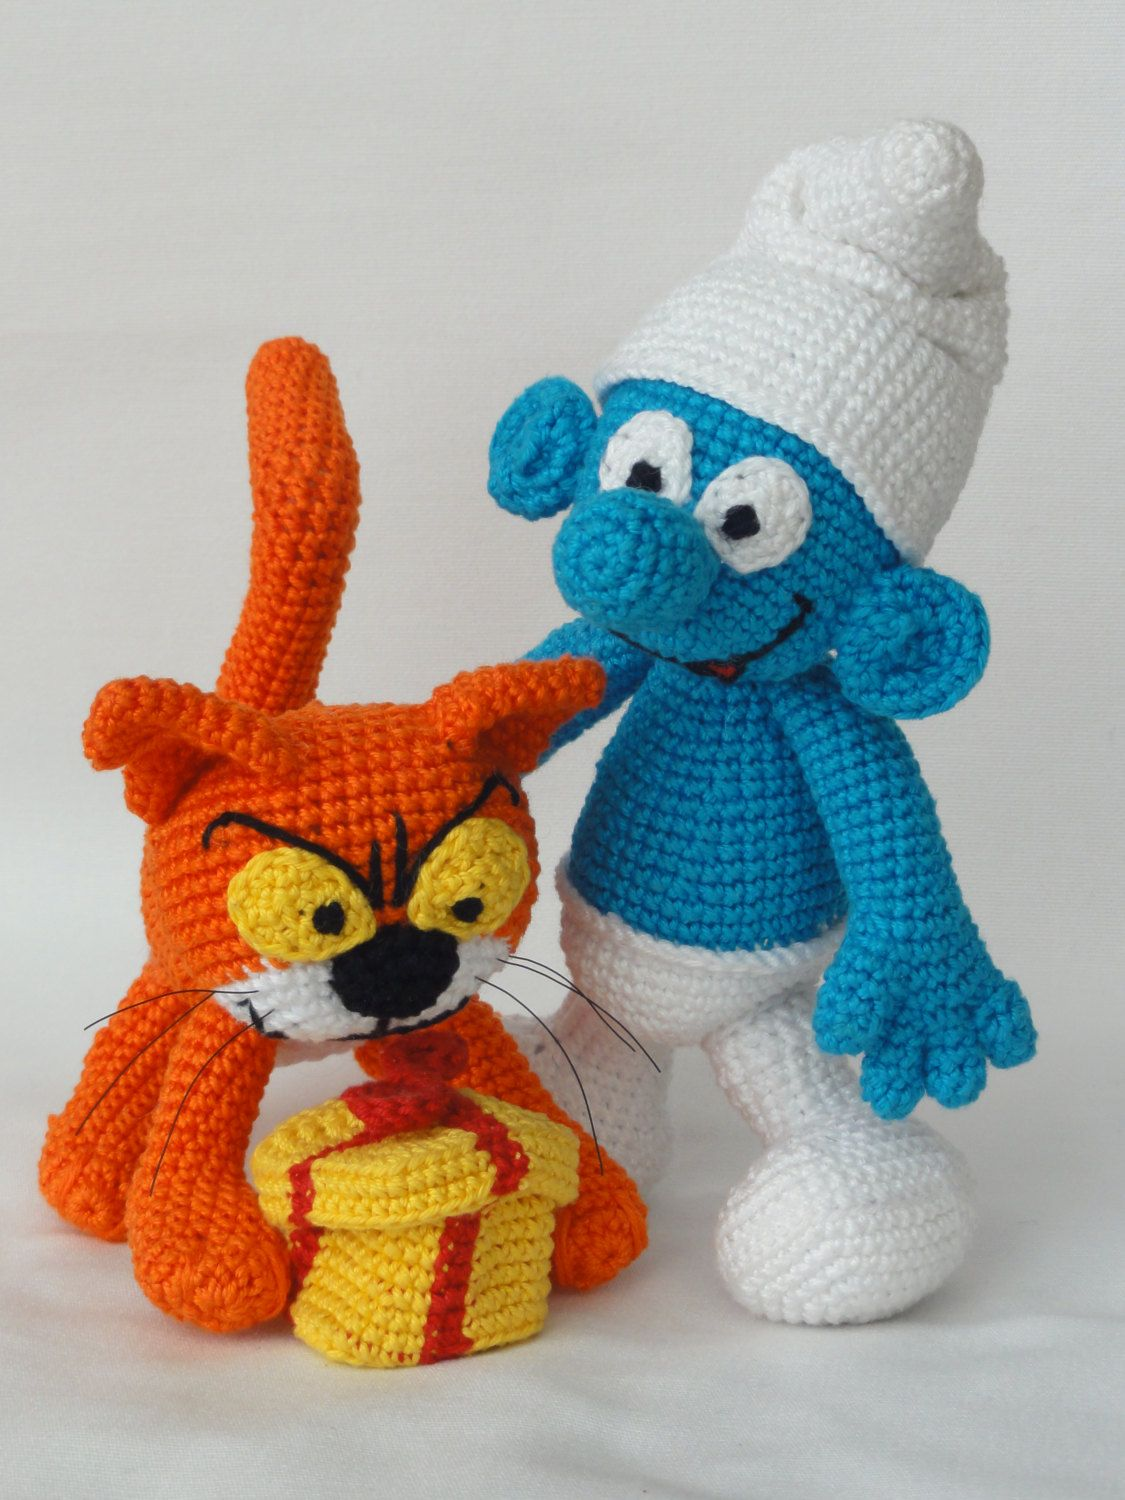 Jokey smurf and azrael the cat crochet amigurumi pinterest jokey smurf and azrael the cat crochet pattern by ildikko on etsy bankloansurffo Image collections